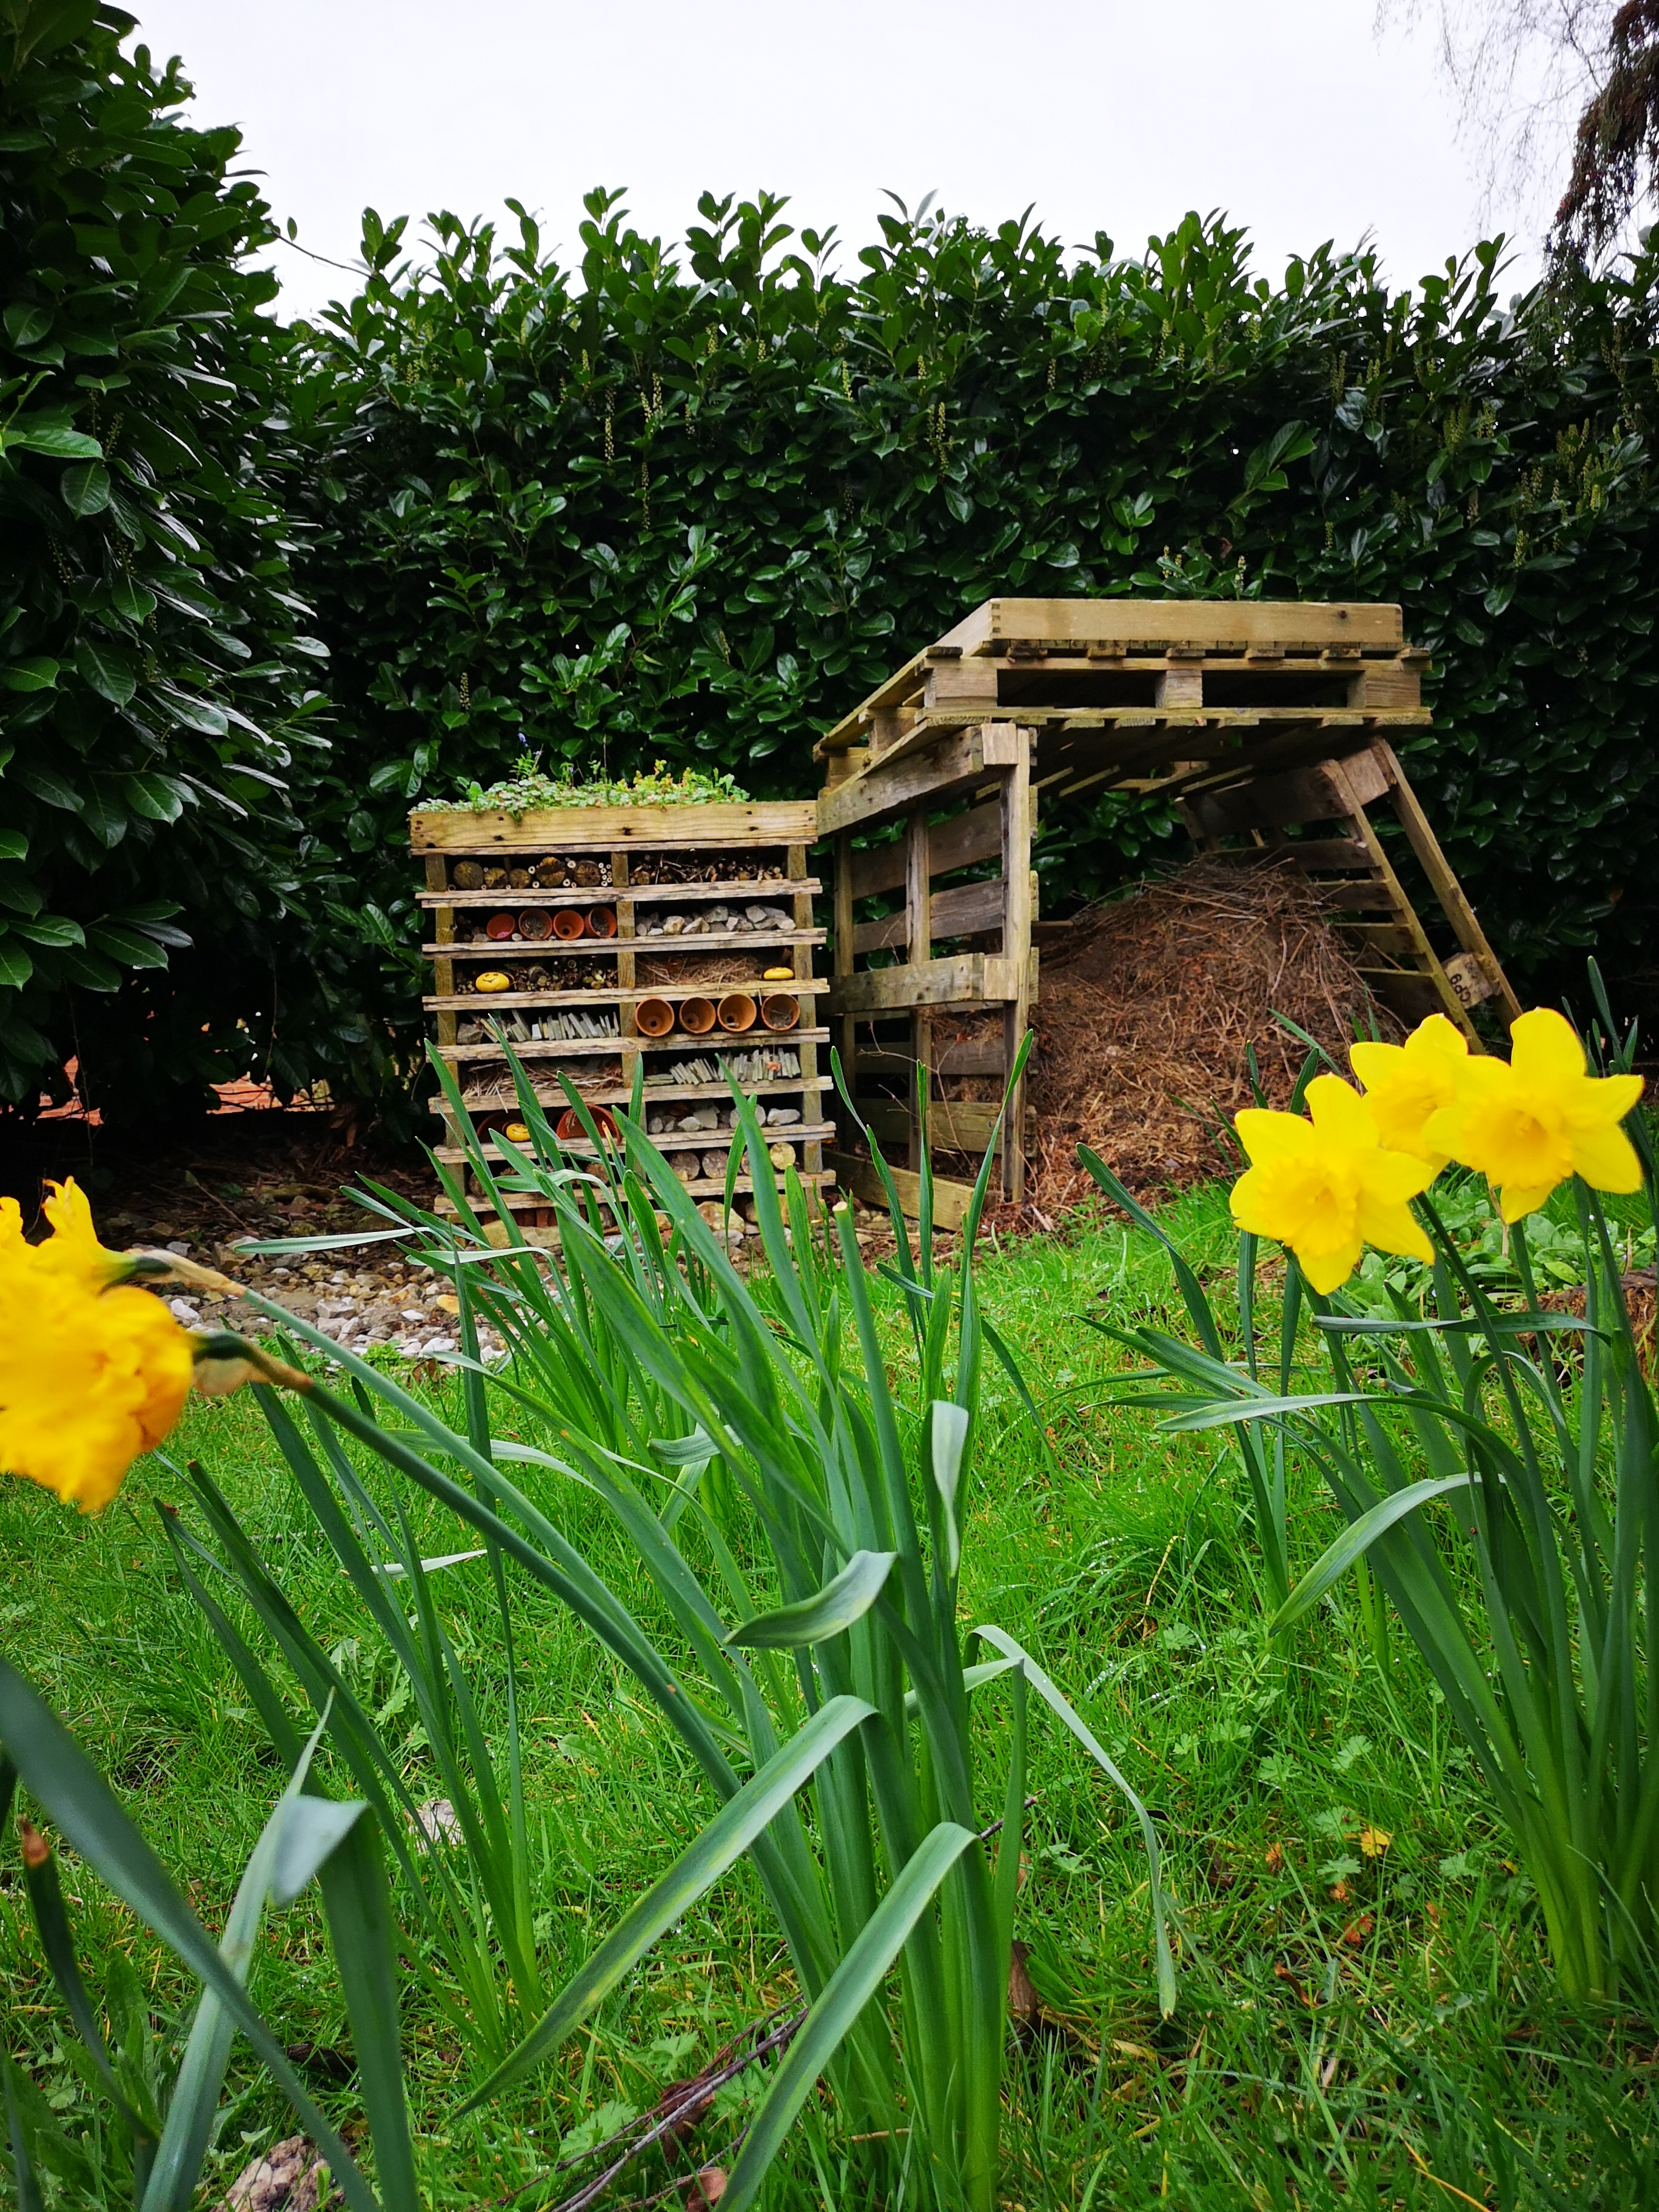 Bee hotel with turf roof and compost bin with daffodils in the foreground